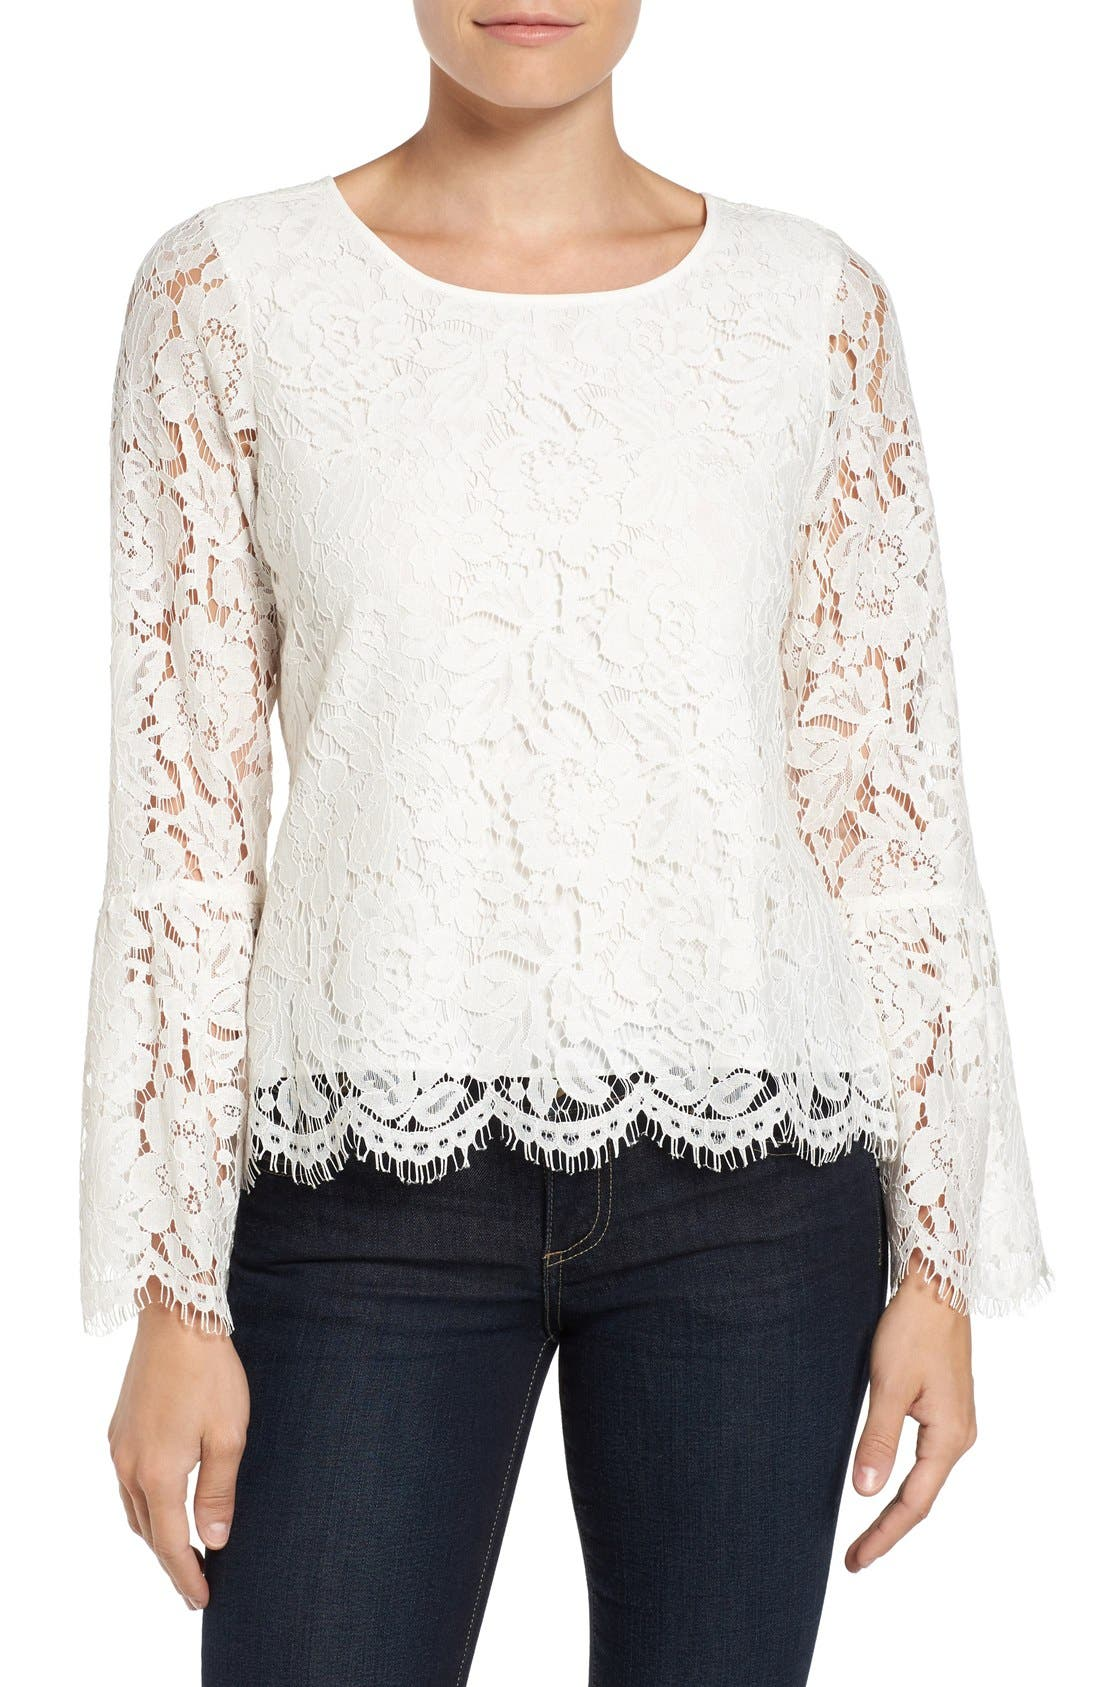 Alternate Image 1 Selected - Vince Camuto Lace Bell Sleeve Blouse (Regular & Petite)